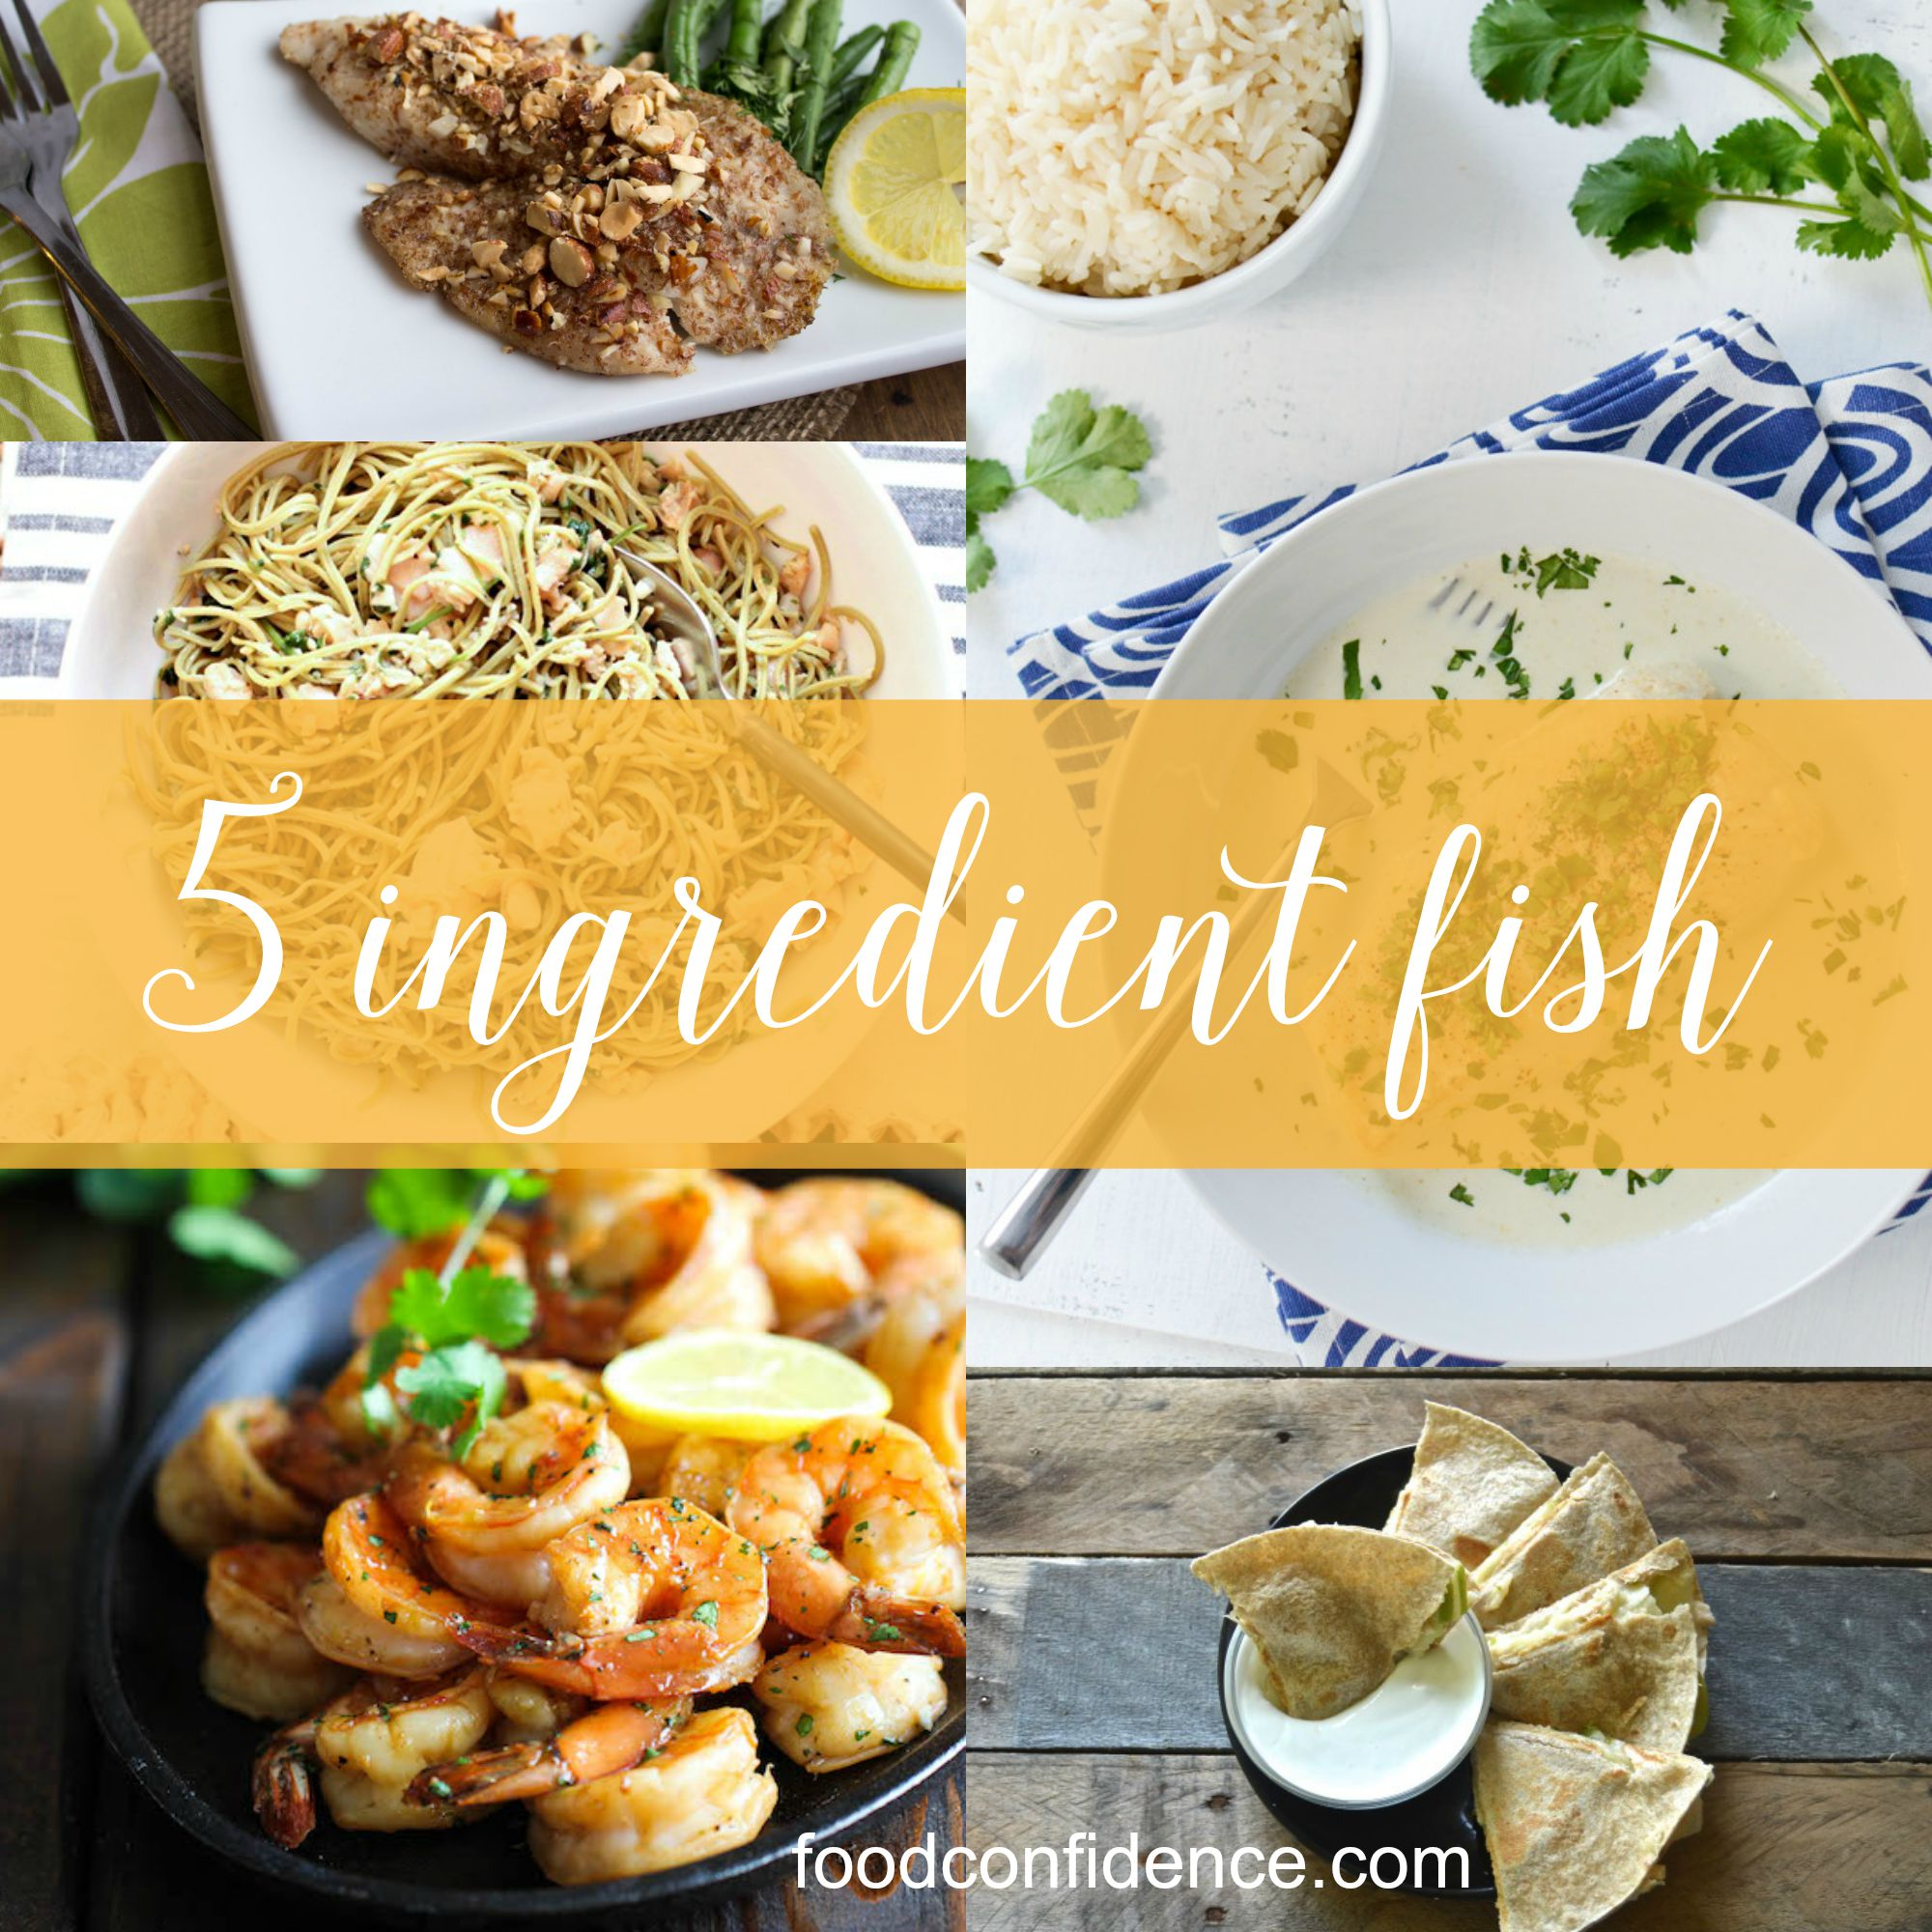 5 ingredient fish recipes round up 5 ingredient fish recipes using cod tilapia shrimp clams and tuna forumfinder Image collections